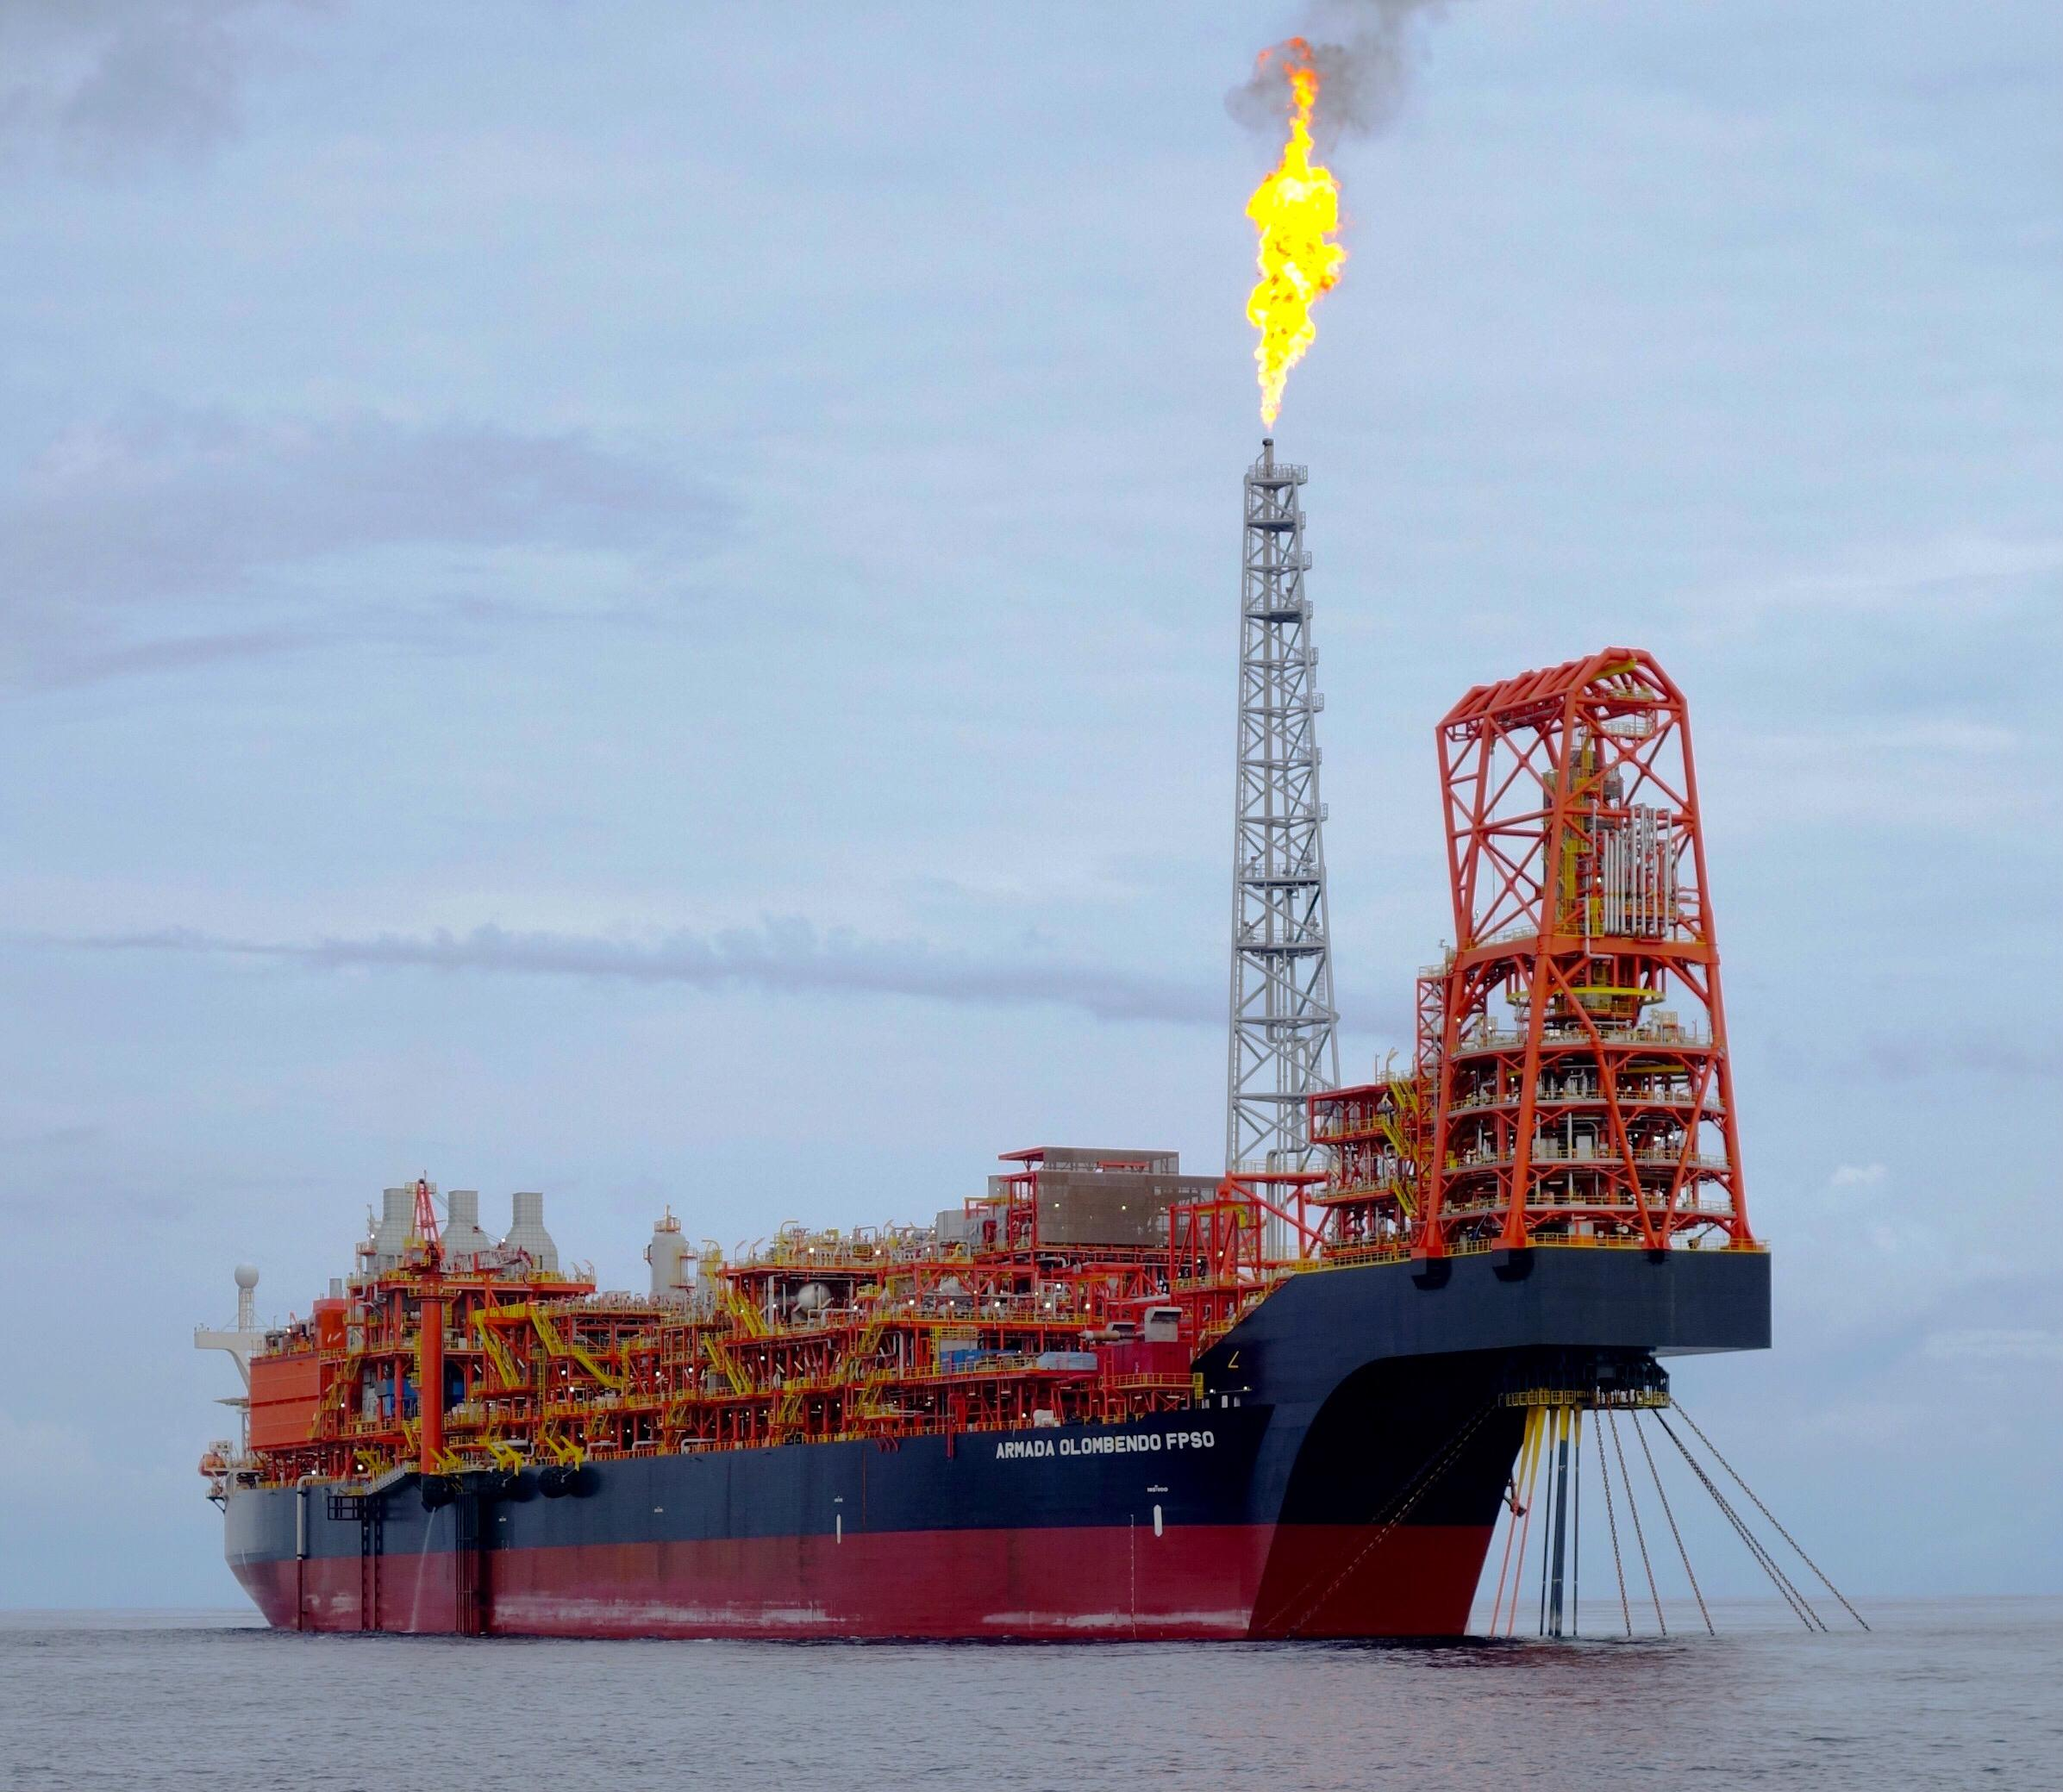 Bumi Armada- The Armada Olombendo FPSO has been steadily producing near its nameplate capacity_0.jpeg